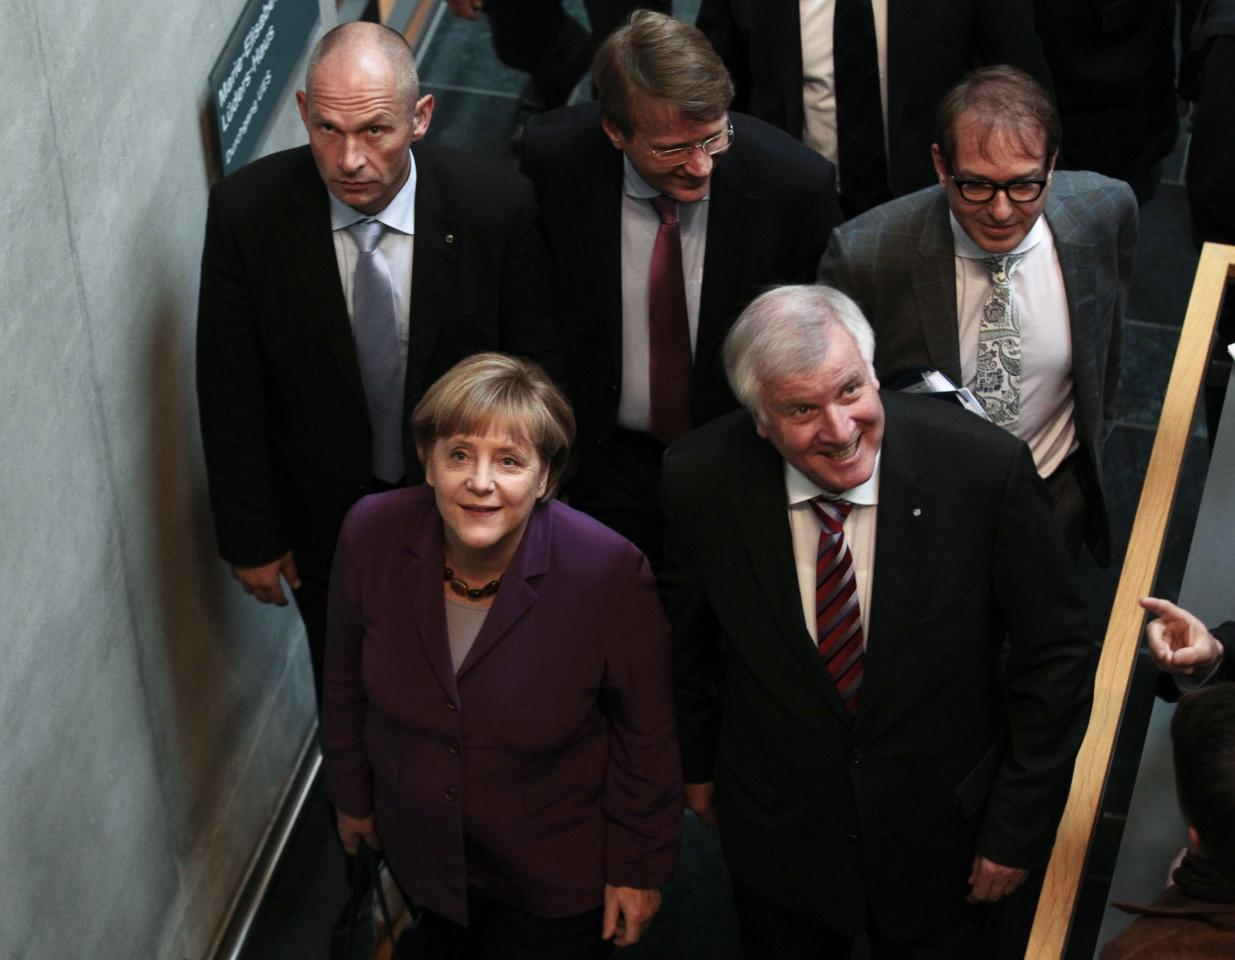 German Chancellor and leader of the Christian Democratic Union (CDU) Angela Merkel and leader of the Christian Social Union party (CSU) Horst Seehofer arrive for preliminary coalition talks between Germany's conservative (CDU/CSU) parties and the environmental Greens party (Die Gruenen) at the Parliamentary Society in Berlin October 10, 2013. REUTERS/Tobias Schwarz (GERMANY - Tags: POLITICS)